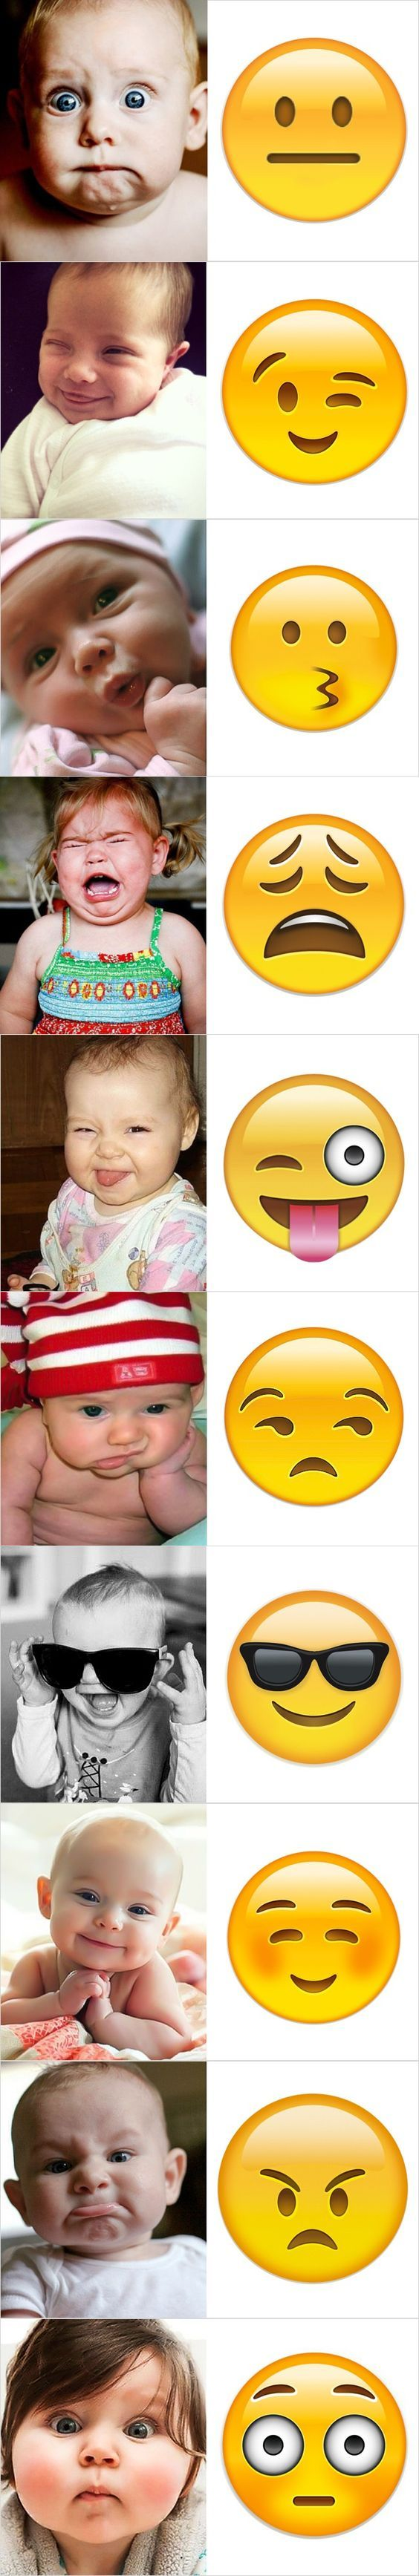 We all add emojis at the end of our texts in order to make them more lively and showing our facial expressions through messages. However, different emojis can add different emotions to your text and if you use them wrongly, the recipients might get the wrong message and lead you to a big trouble my friend.: